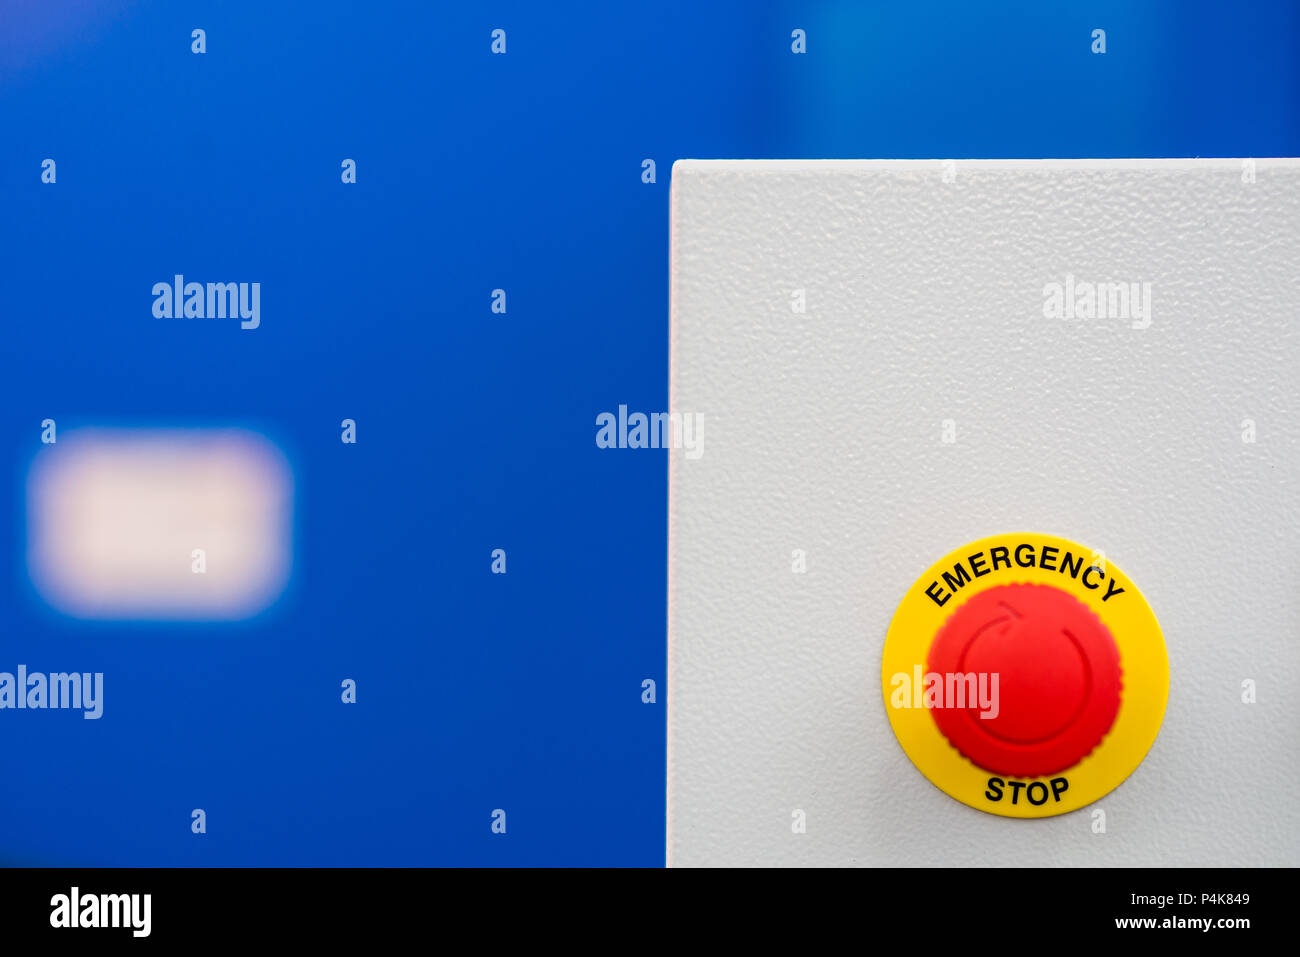 Emergency Switch Stock Photos & Emergency Switch Stock